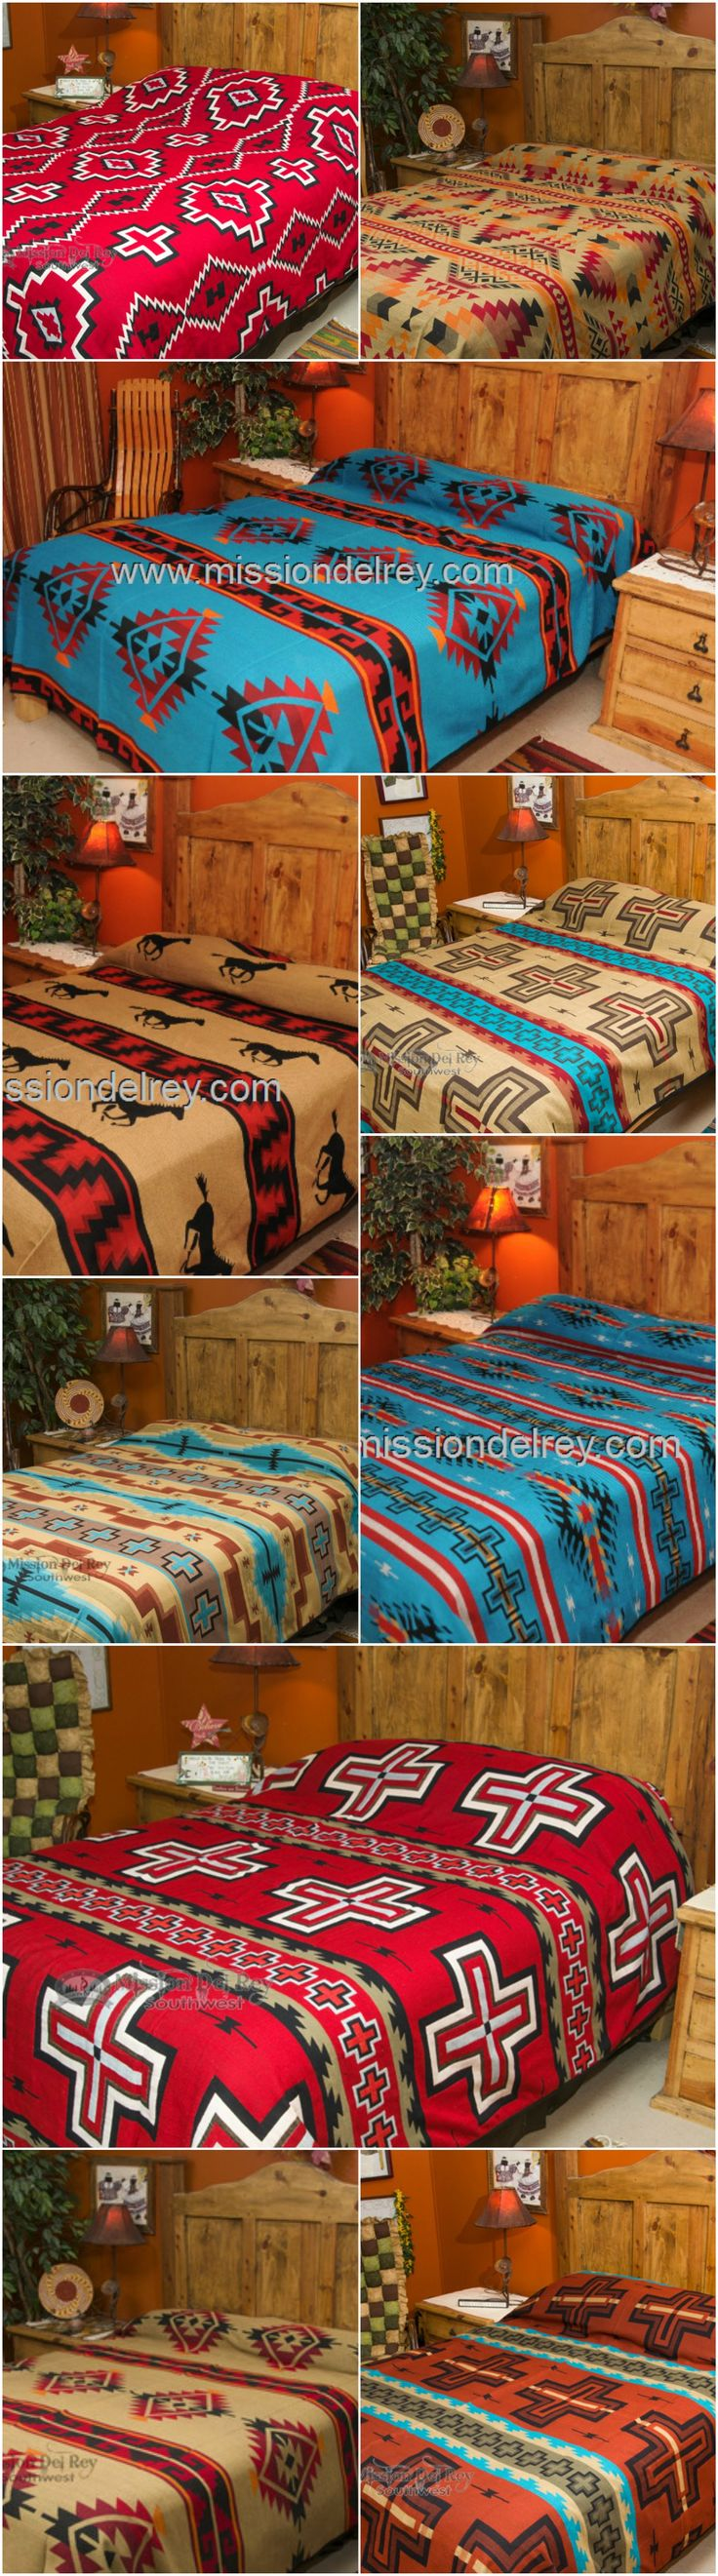 Dress up any room with great western style by simply adding  a western bedspread from our western bedding collection.  Western bedspreads are the perfect accent piece for lodge style, cabin, rustic or southwestern homes.  Watch the Old West come to life in your home, and add authentic western style with a colorful bedspread from our western bedding collection.  See more western bedding and bedspreads at http://www.missiondelrey.com/southwestern-bedspreads/